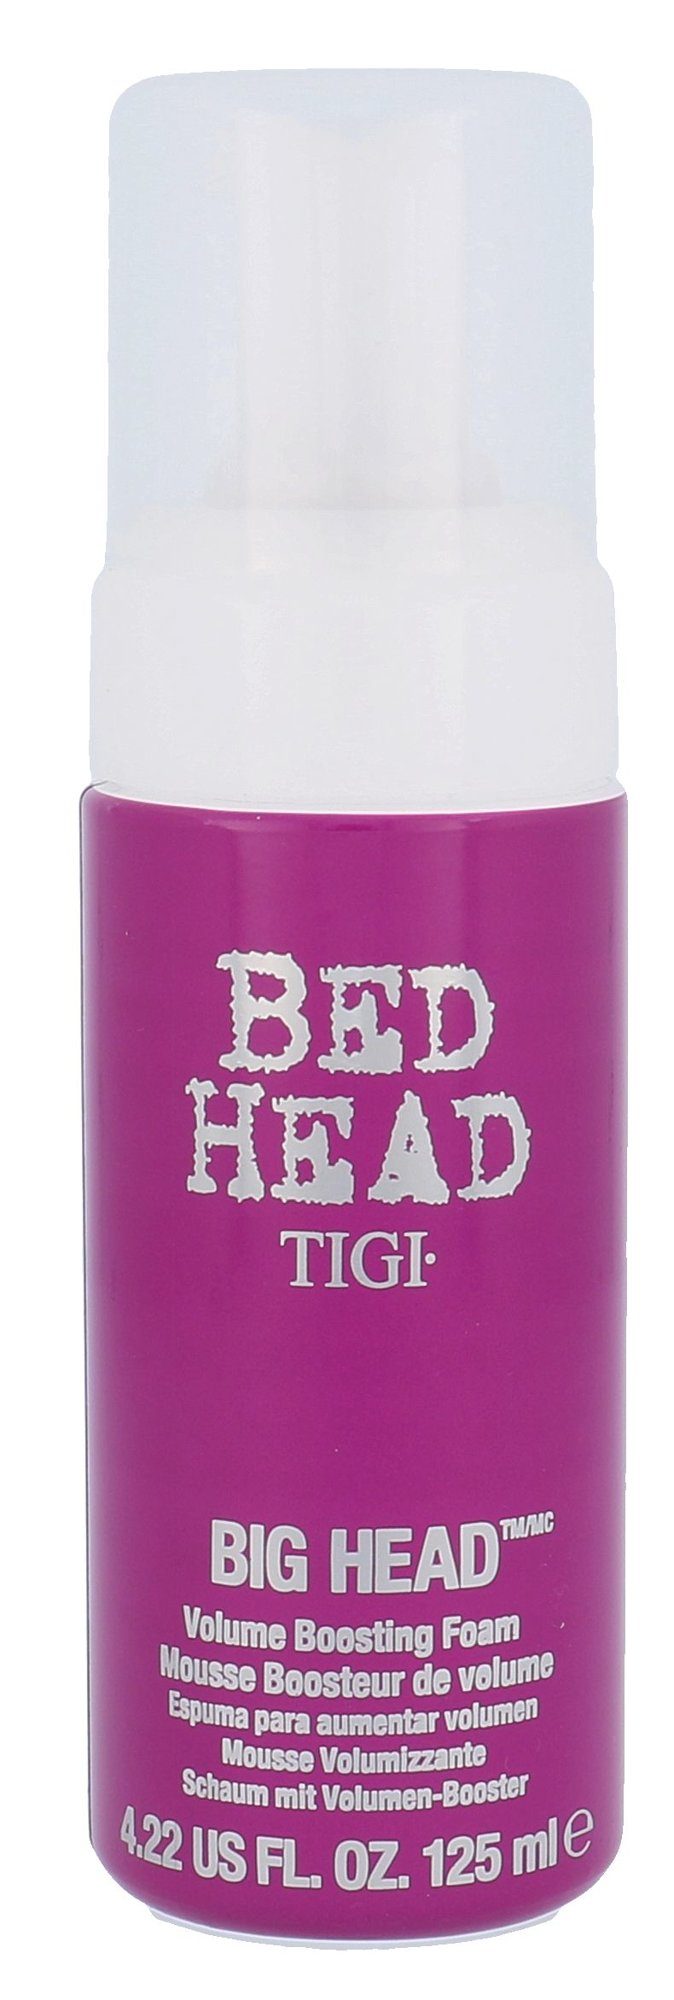 Tigi Bed Head Big Head Cosmetic 125ml